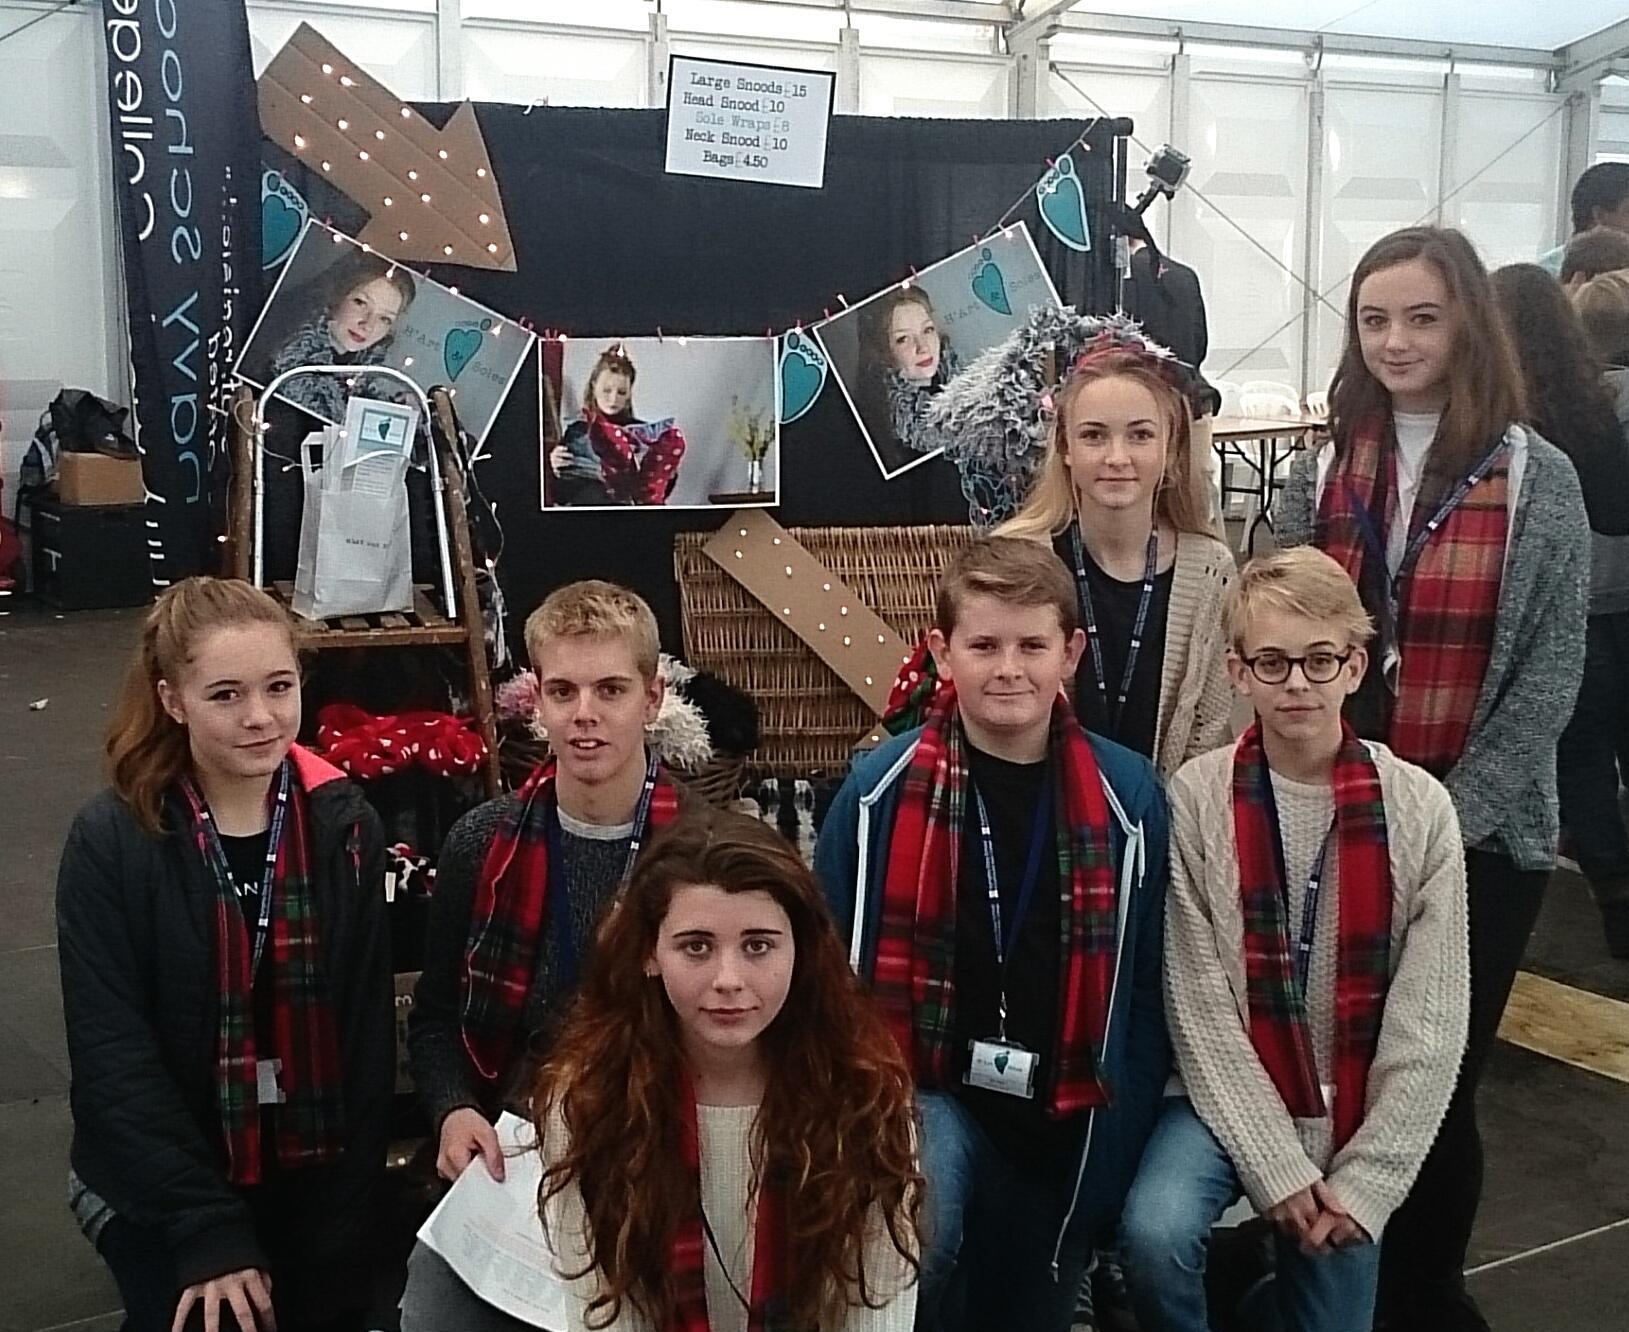 Selling their wraps, snoods and bags at last year's Young Enterprise Christmas Fair is the team from Humphry Davy School, H'Art and Soles.